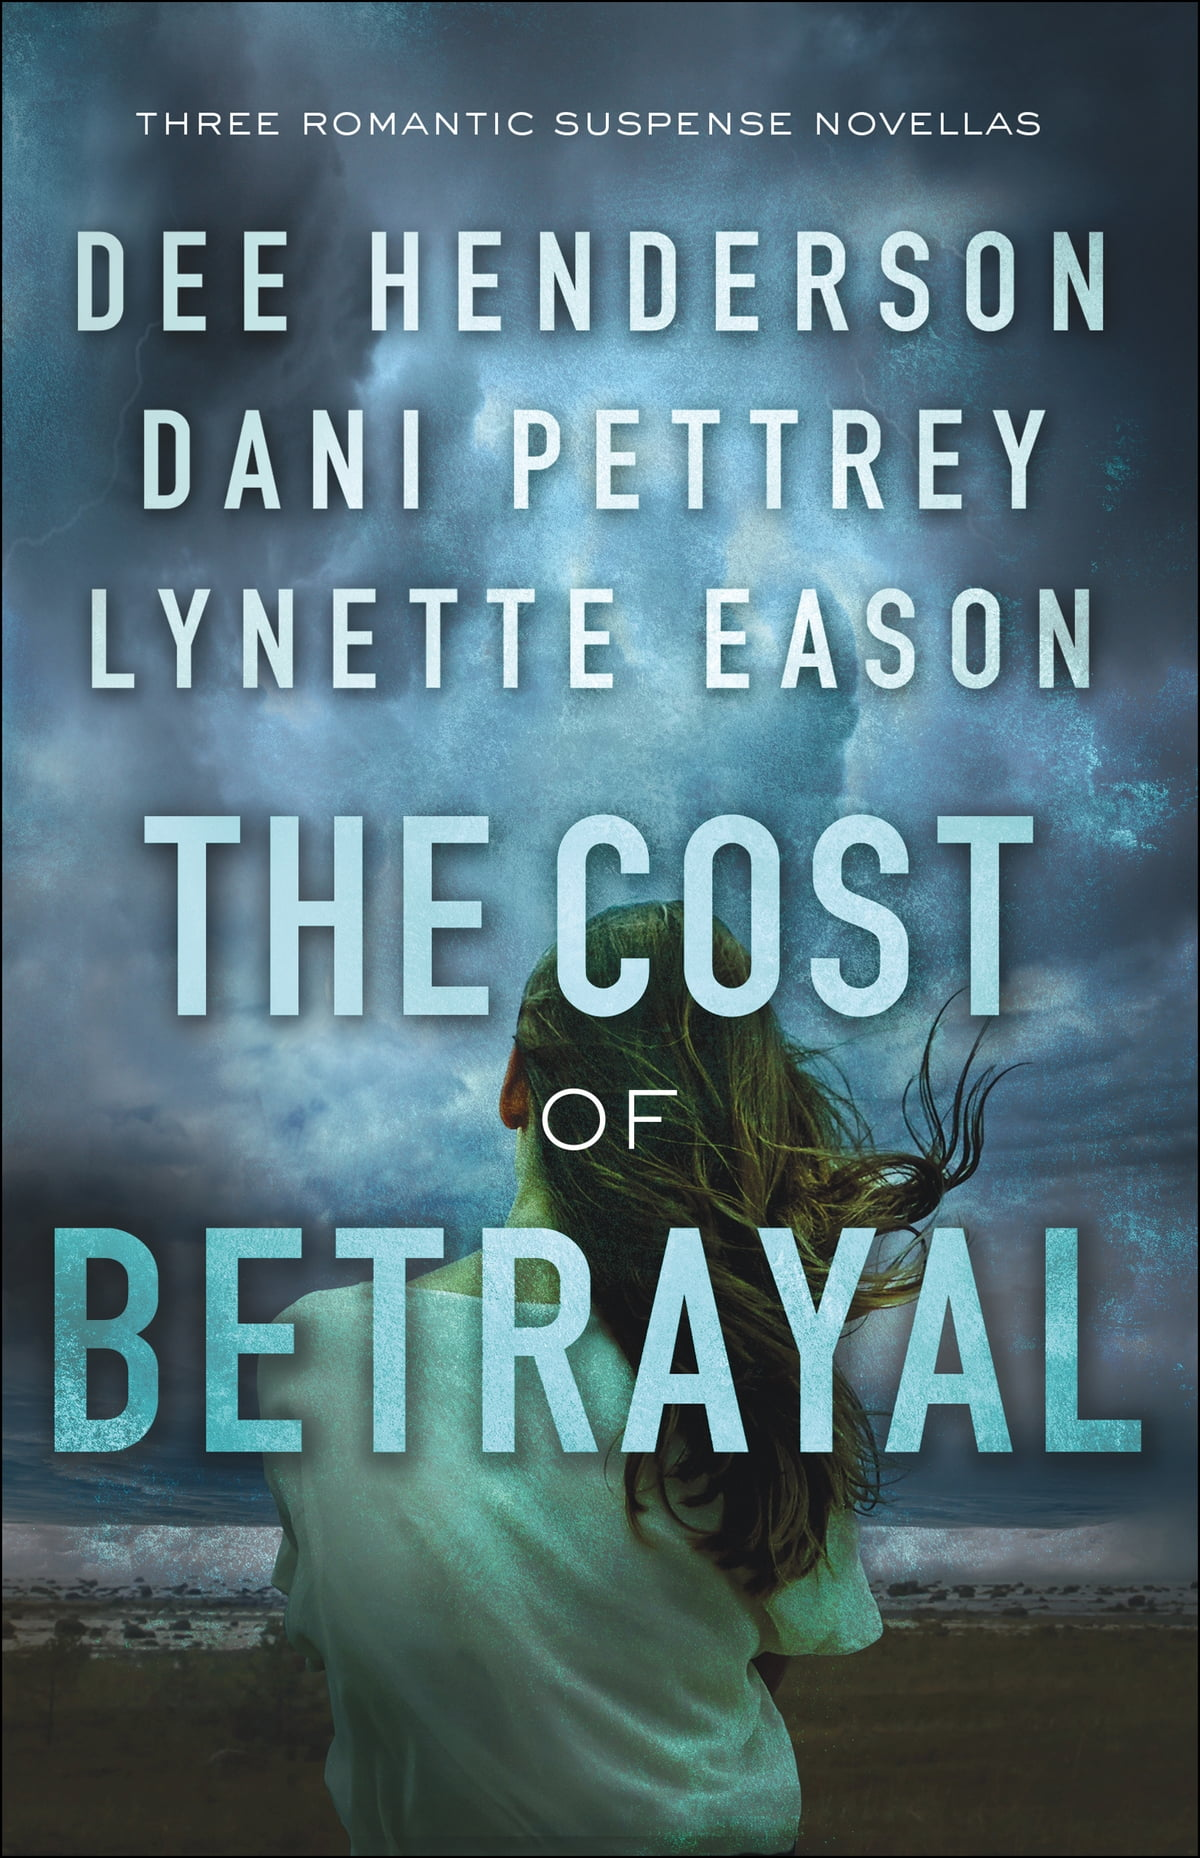 The Cost of Betrayal eBook by Dee Henderson - 9781493416059 | Rakuten Kobo